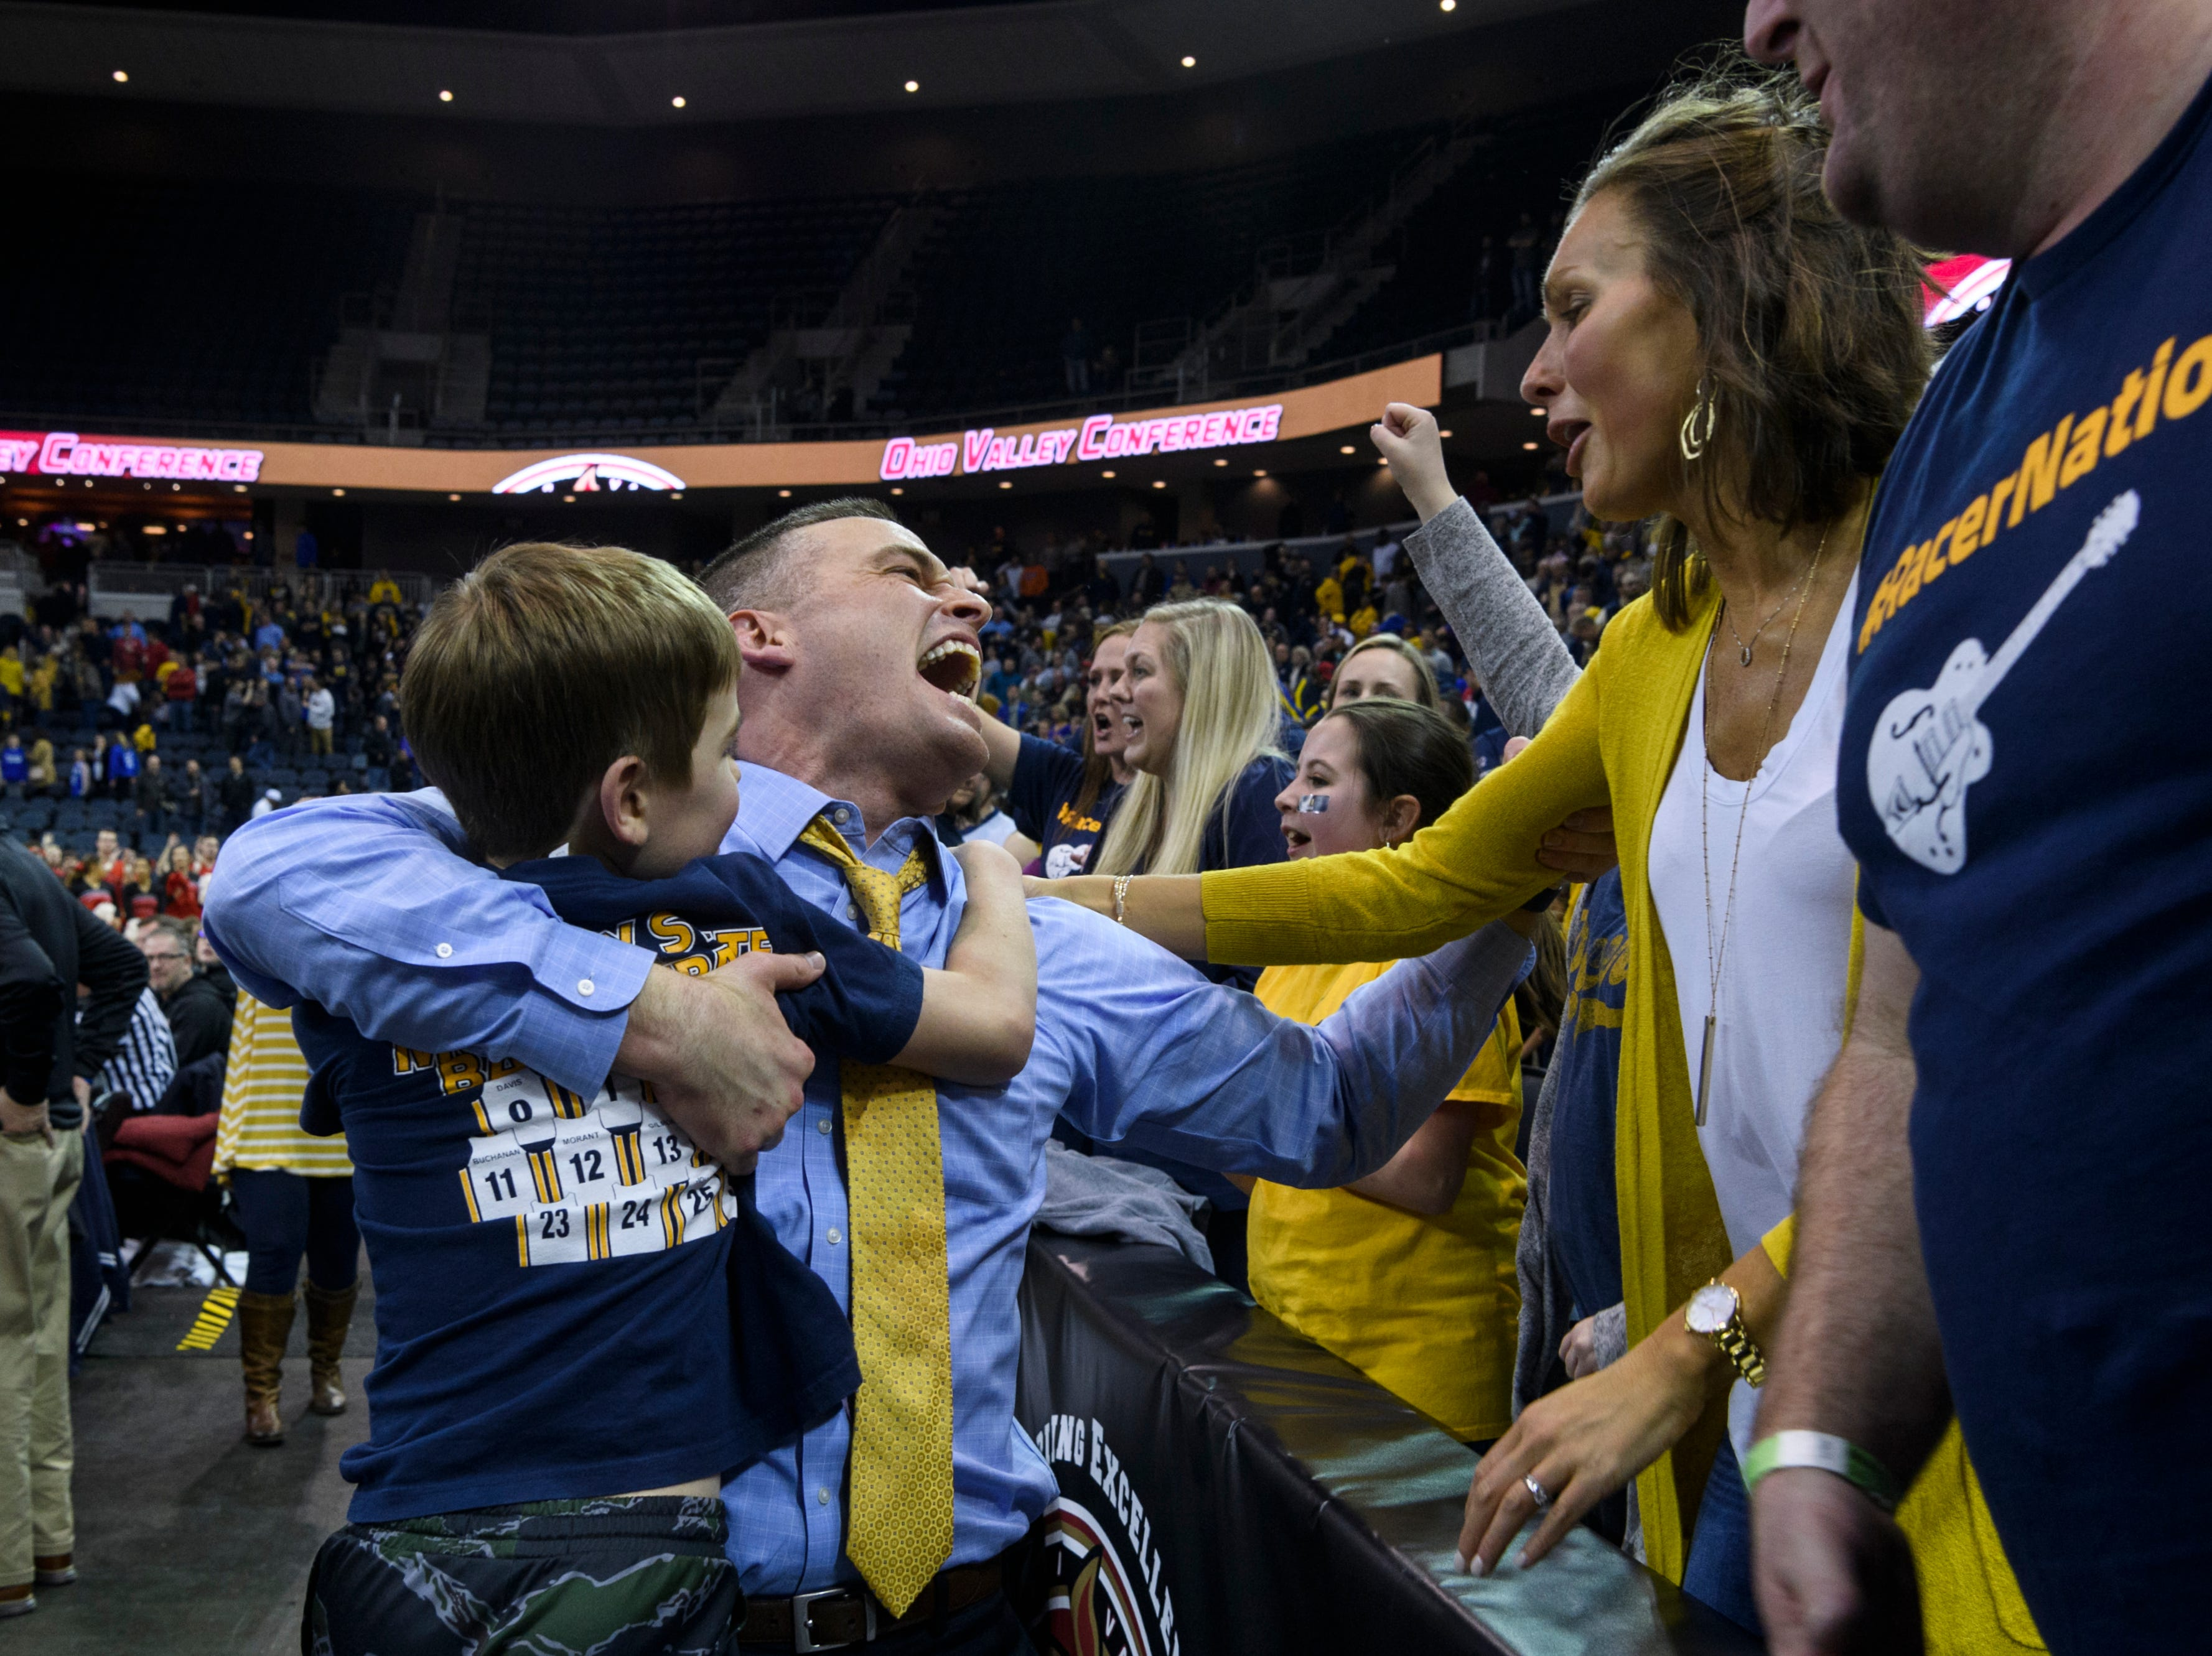 Matt McMahon, center, Murray State Racers Head Coach, celebrates the team's 76-74 win with his son Mason, 7, and wife Mary McMahon during the Ohio Valley Conference tournament semifinals against the Jacksonville State University Gamecocks at Ford Center in Evansville, Ind., Friday, March 8, 2019. The Racers will advance to Saturday's OVC Championship against the Belmont Bruins.